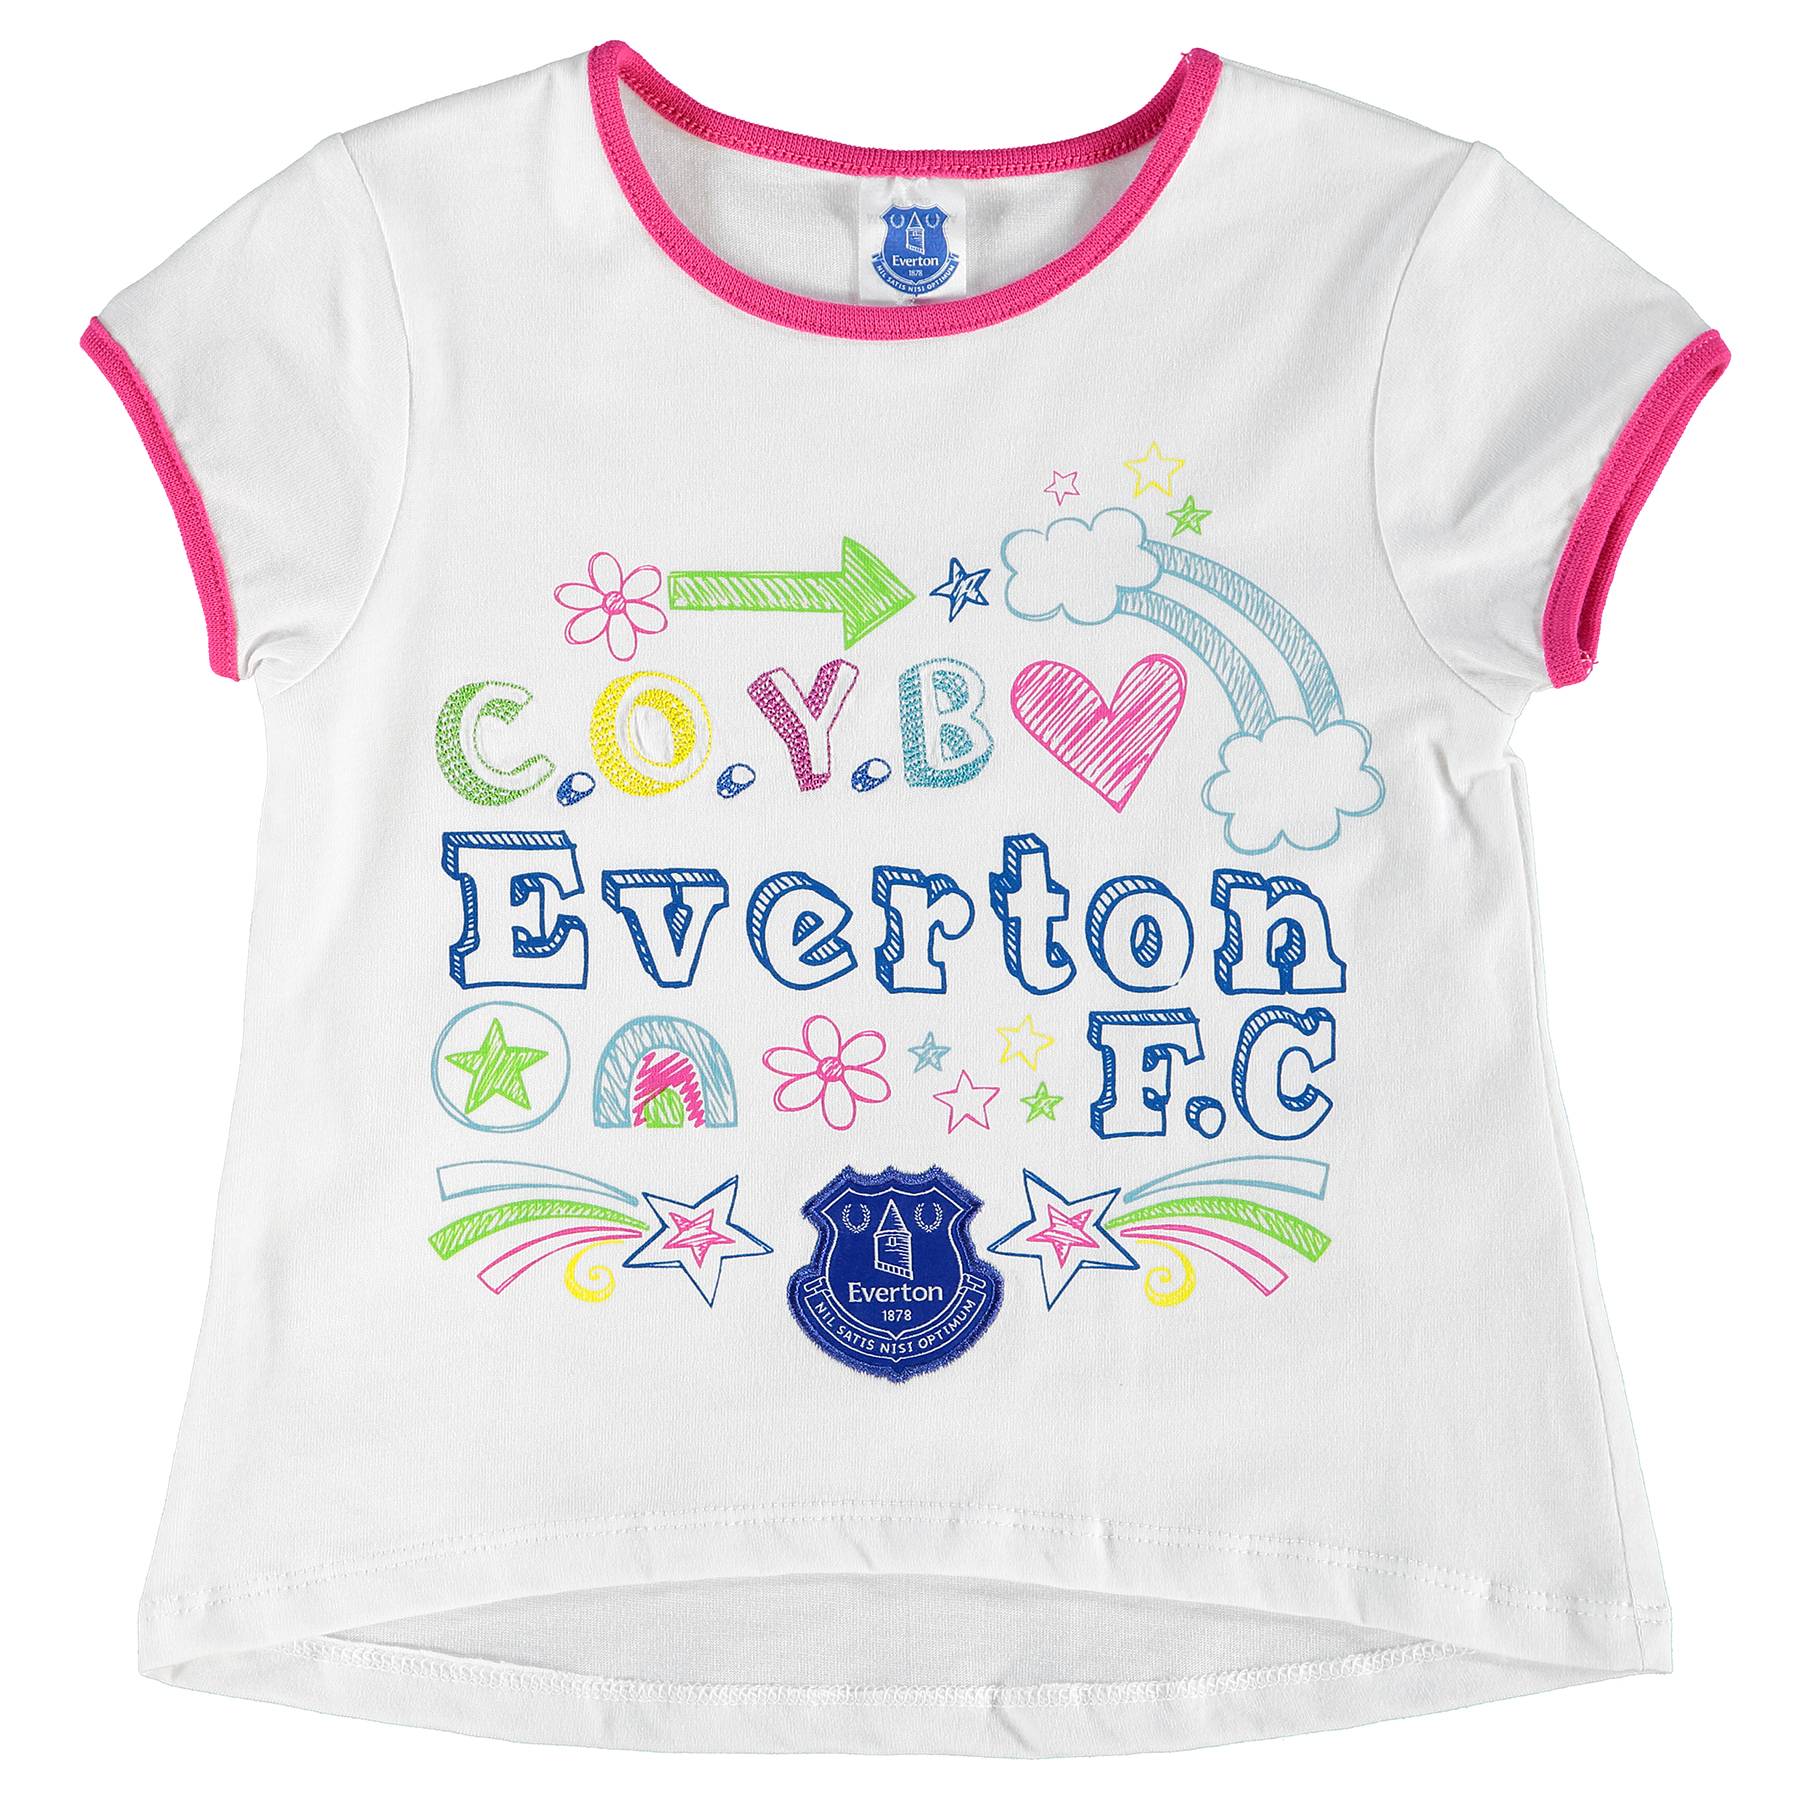 Everton Graphic T-Shirt - White/Pink - Baby